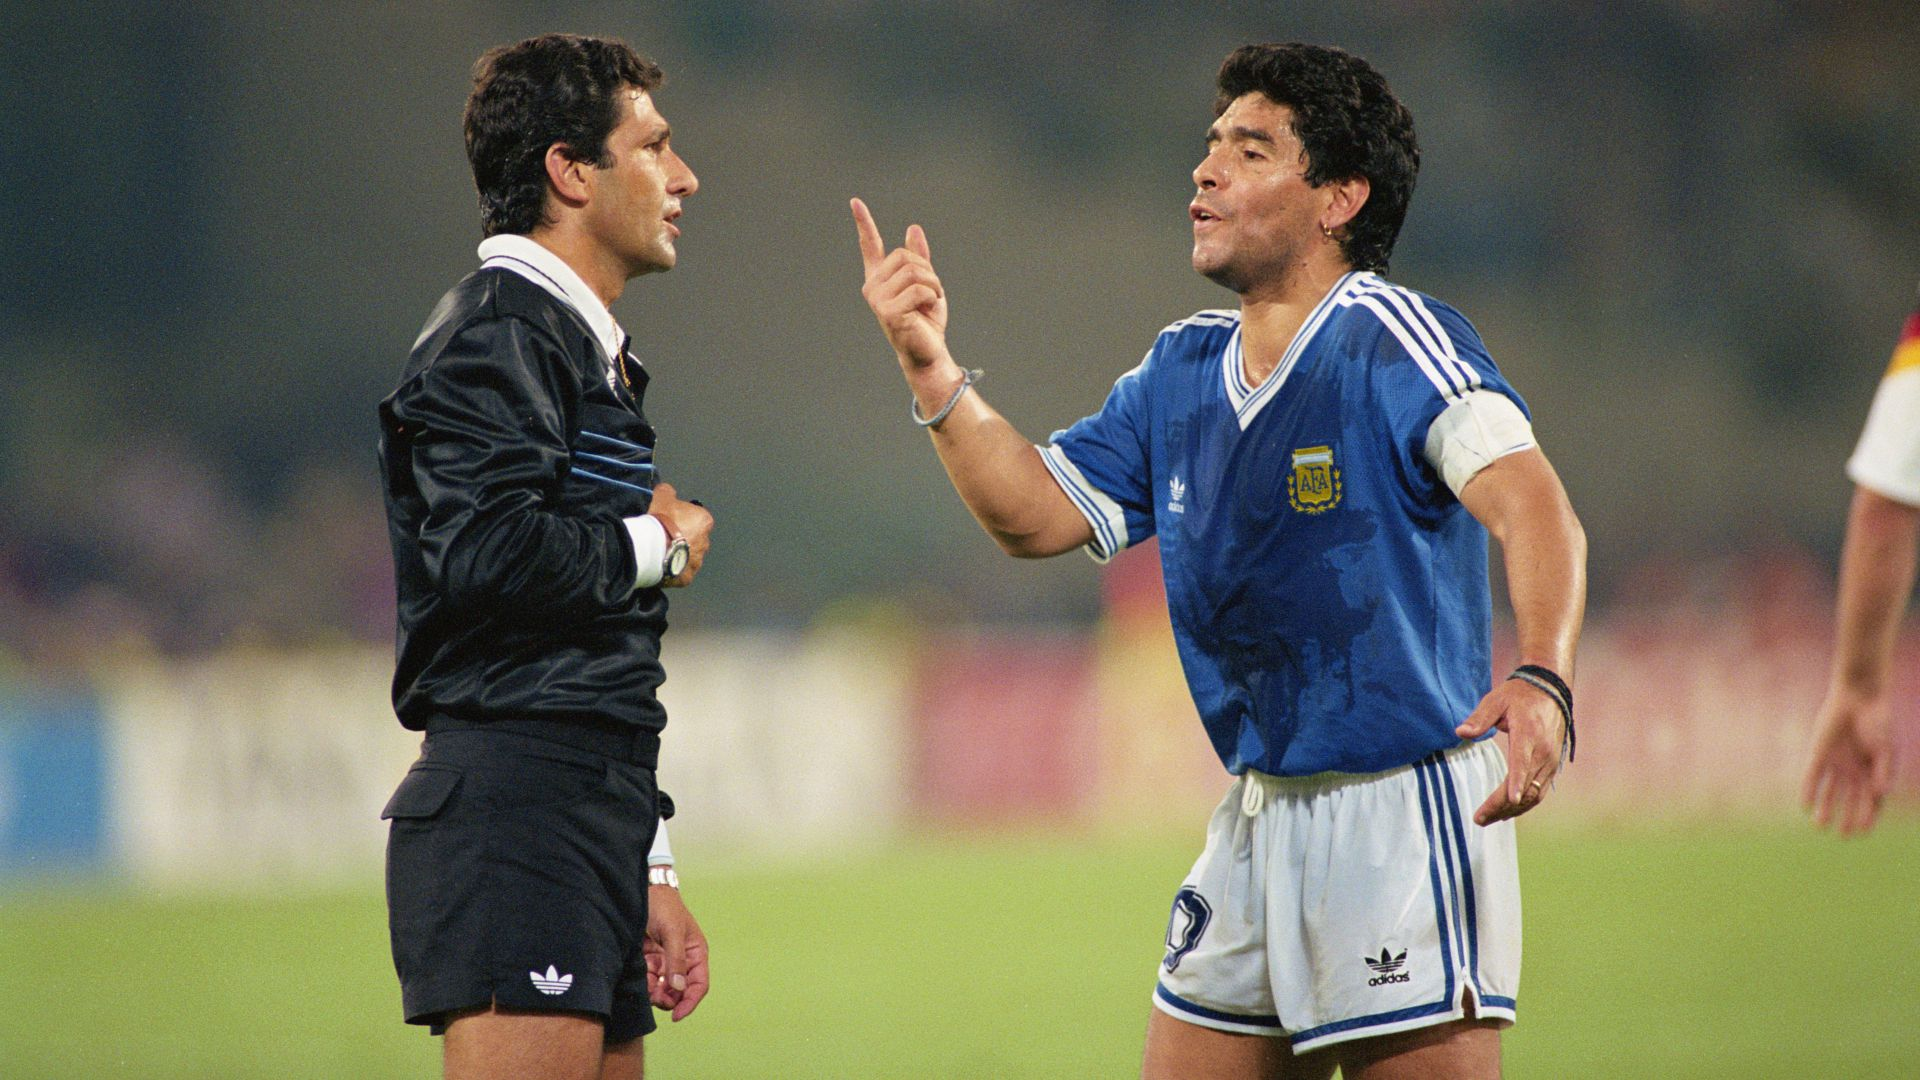 Referee reveals why he could have sent Maradona off before 1990 World Cup final